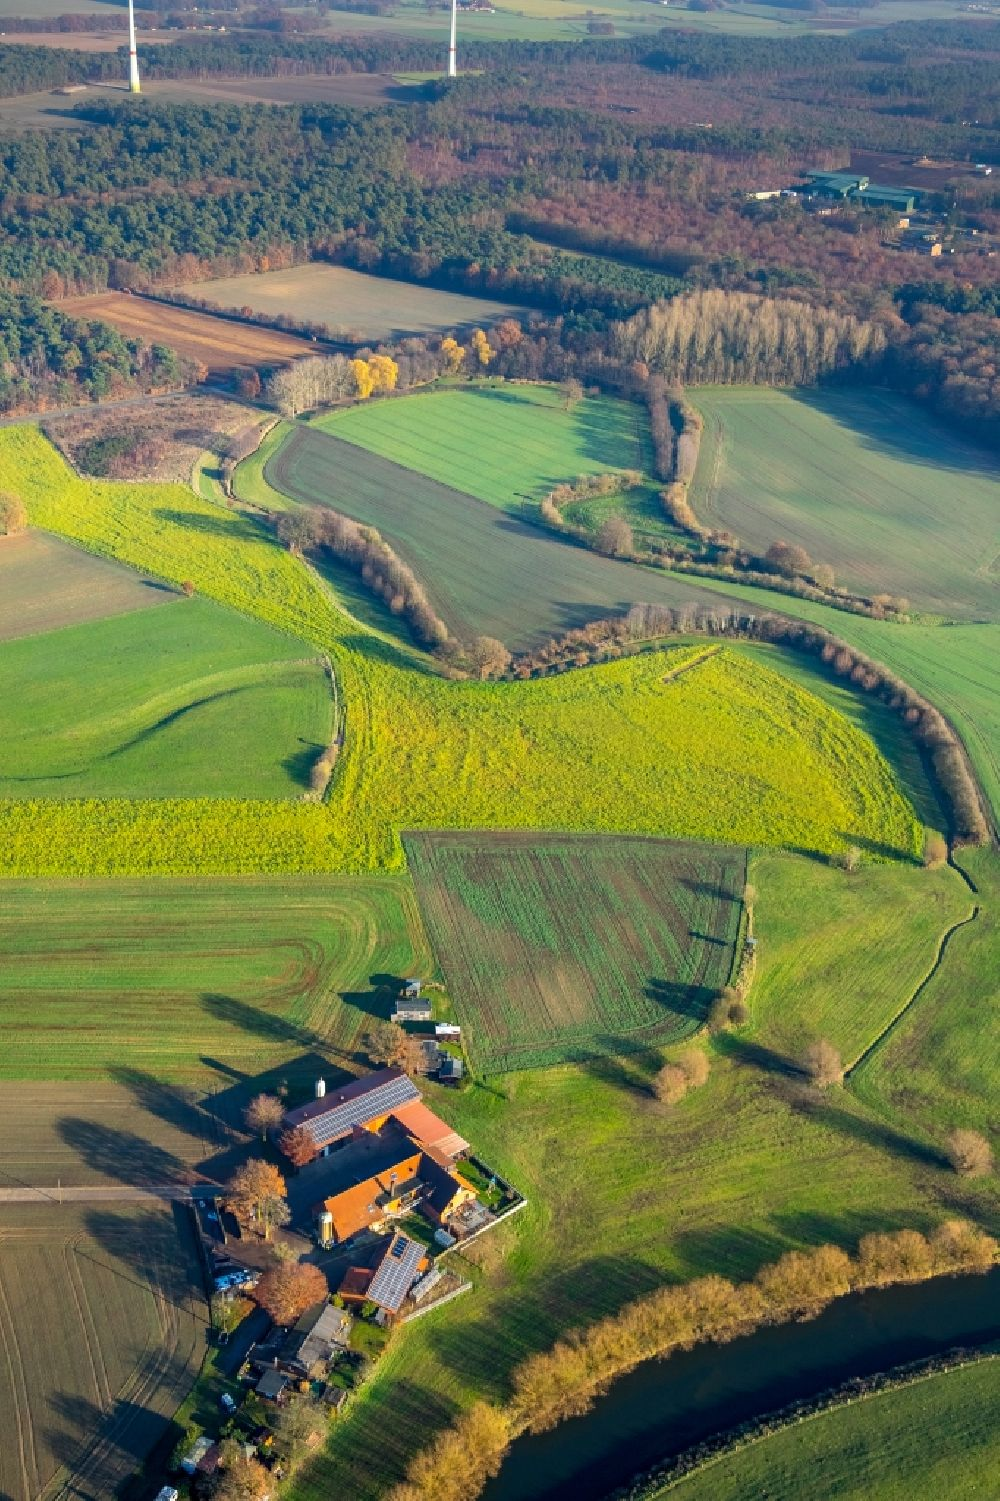 Haltern am See from the bird's eye view: Grassland structures of a meadow and field landscape in the lowland on river shore of Lippe in Haltern am See in the state North Rhine-Westphalia, Germany